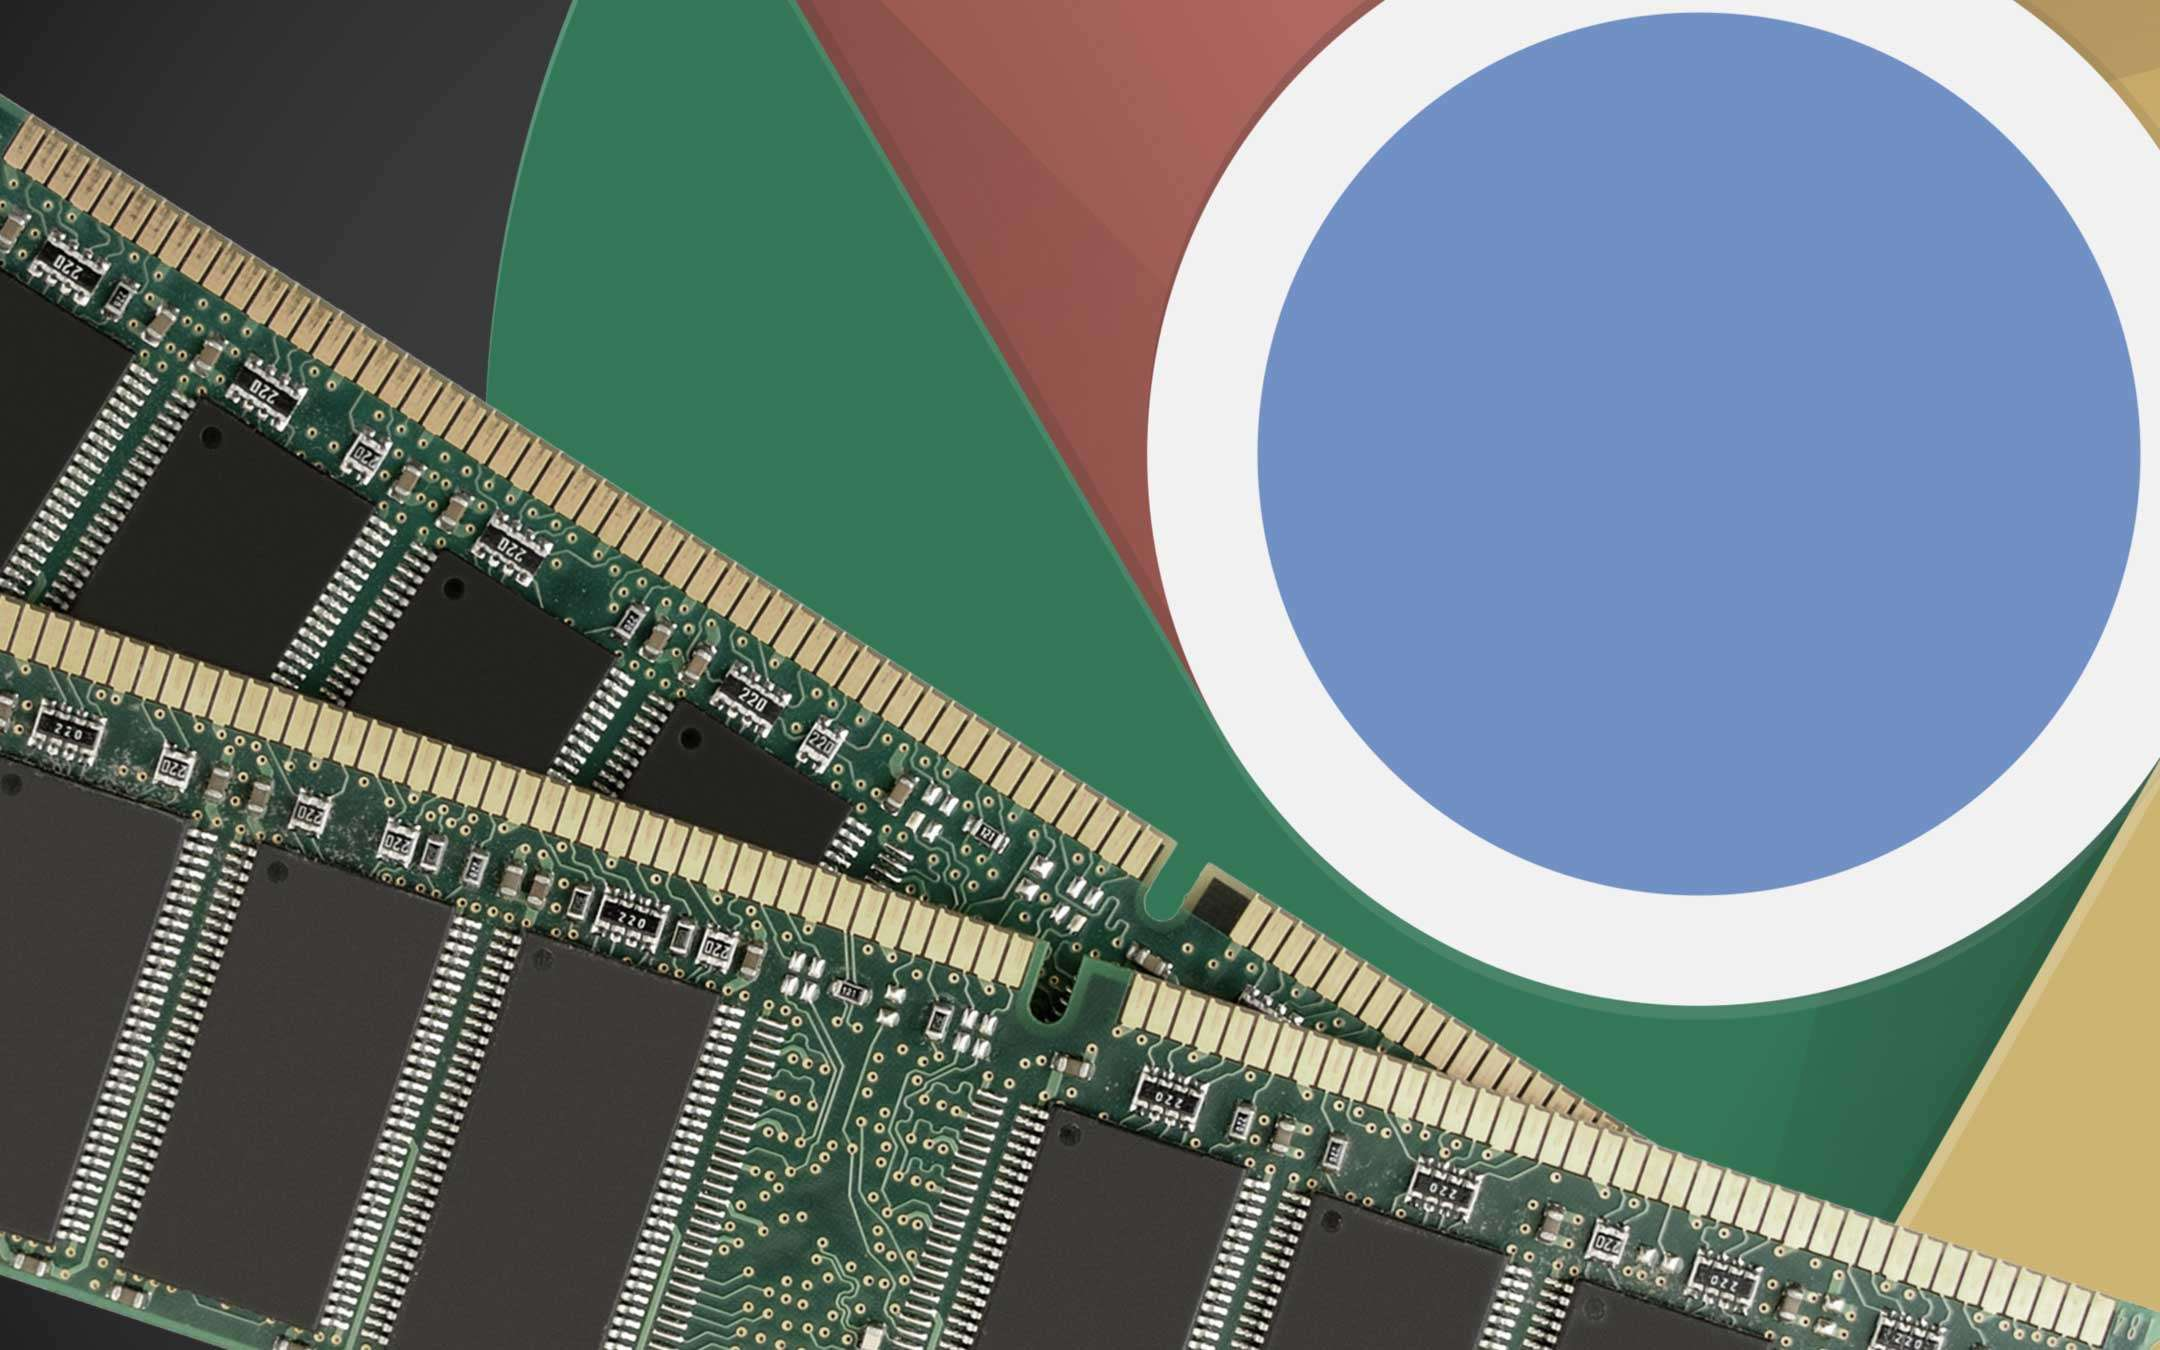 Chrome will consume less RAM on W10, Linux and Android